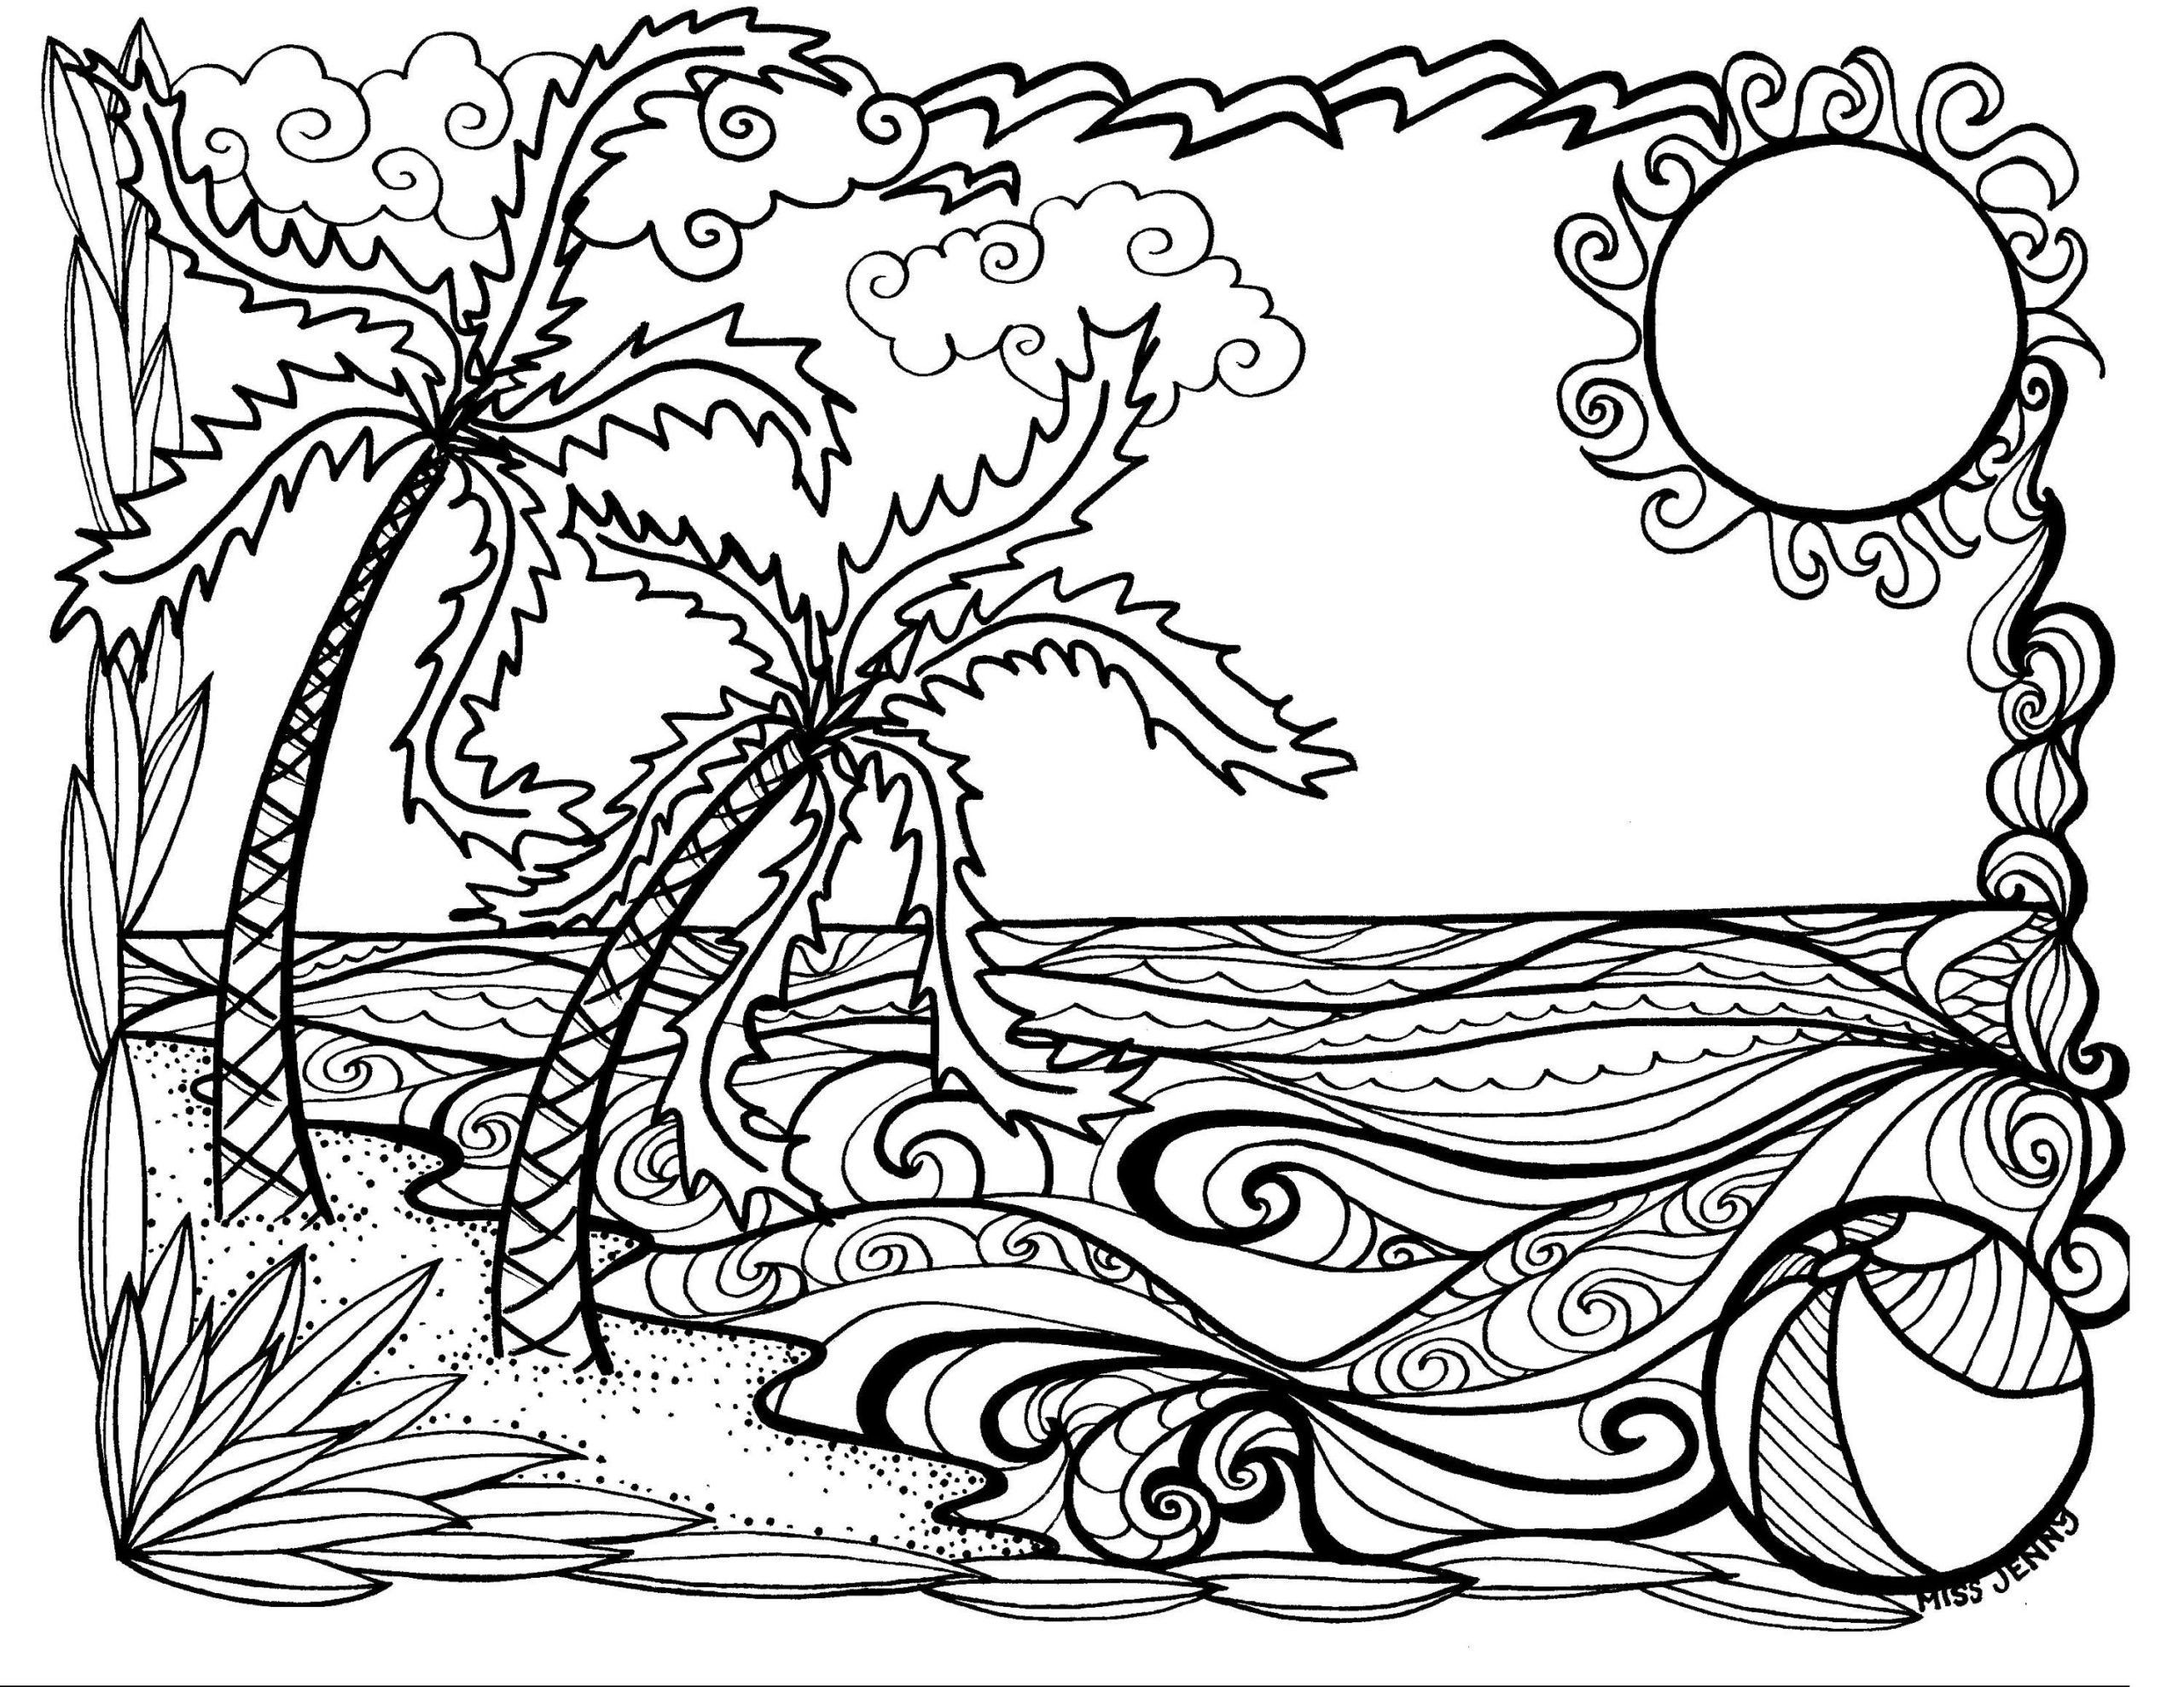 Summer Coloring Sheets Printable Preschool Summer Coloring Pages Sheets Best Friends In 2020 Cool Coloring Pages Summer Coloring Sheets Summer Coloring Pages